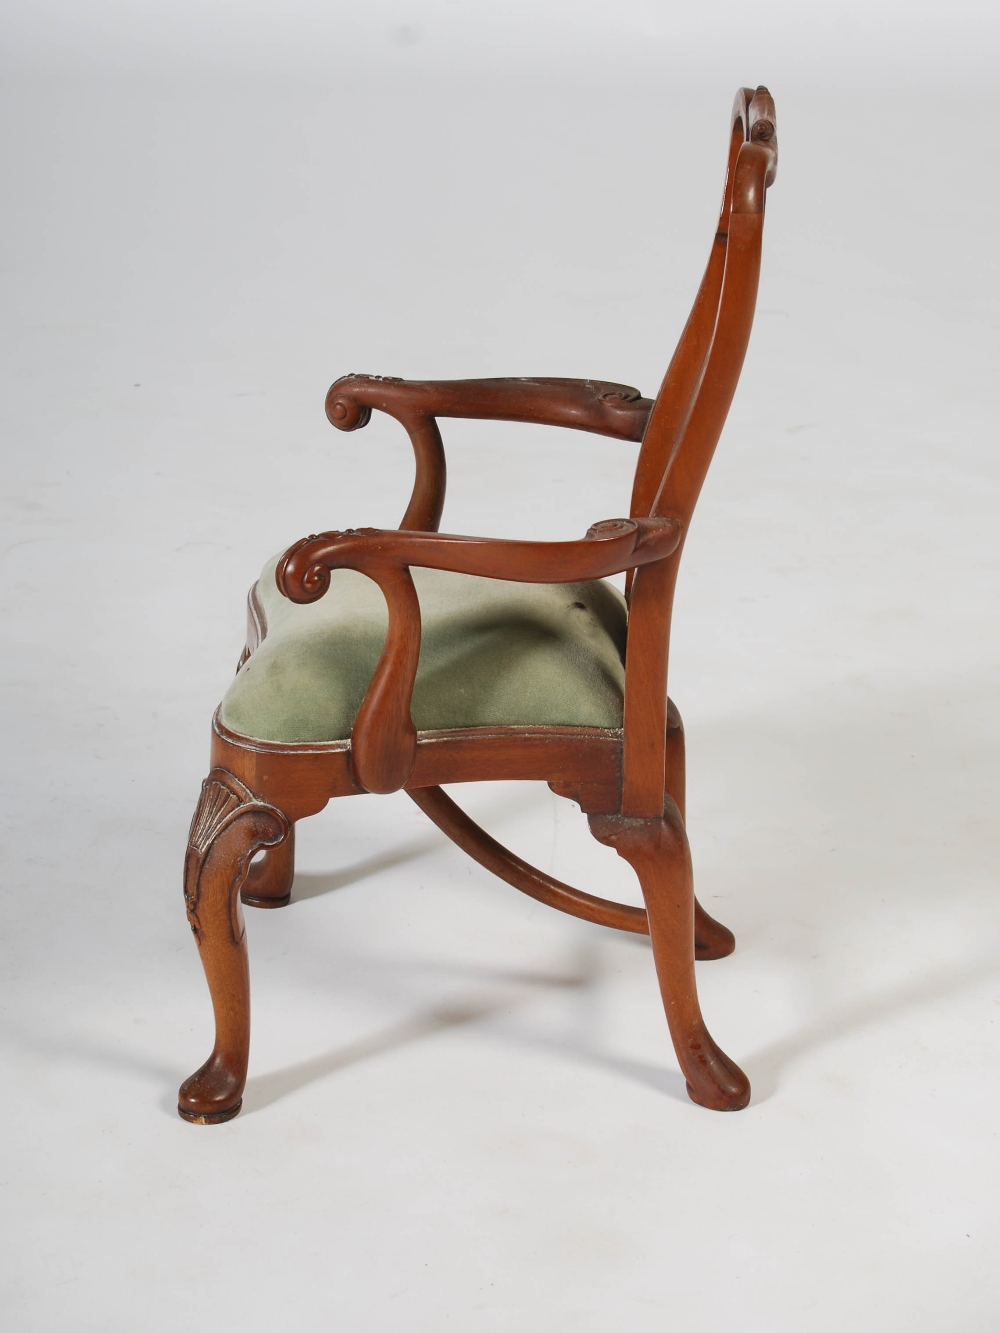 Lot 111 - A 20th century mahogany miniature George III style elbow chair, with green velvet upholstered